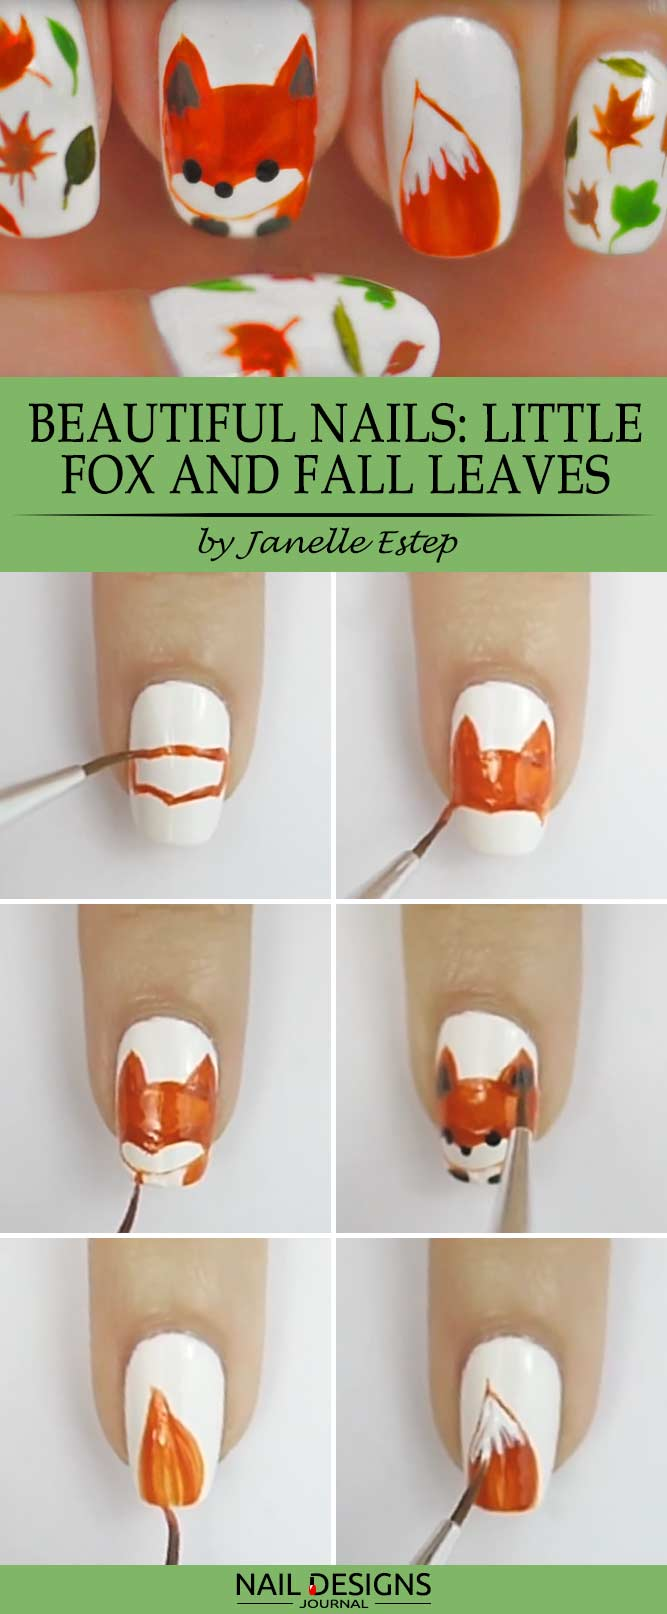 Beautiful Nails Little Fox and Fall Leaves